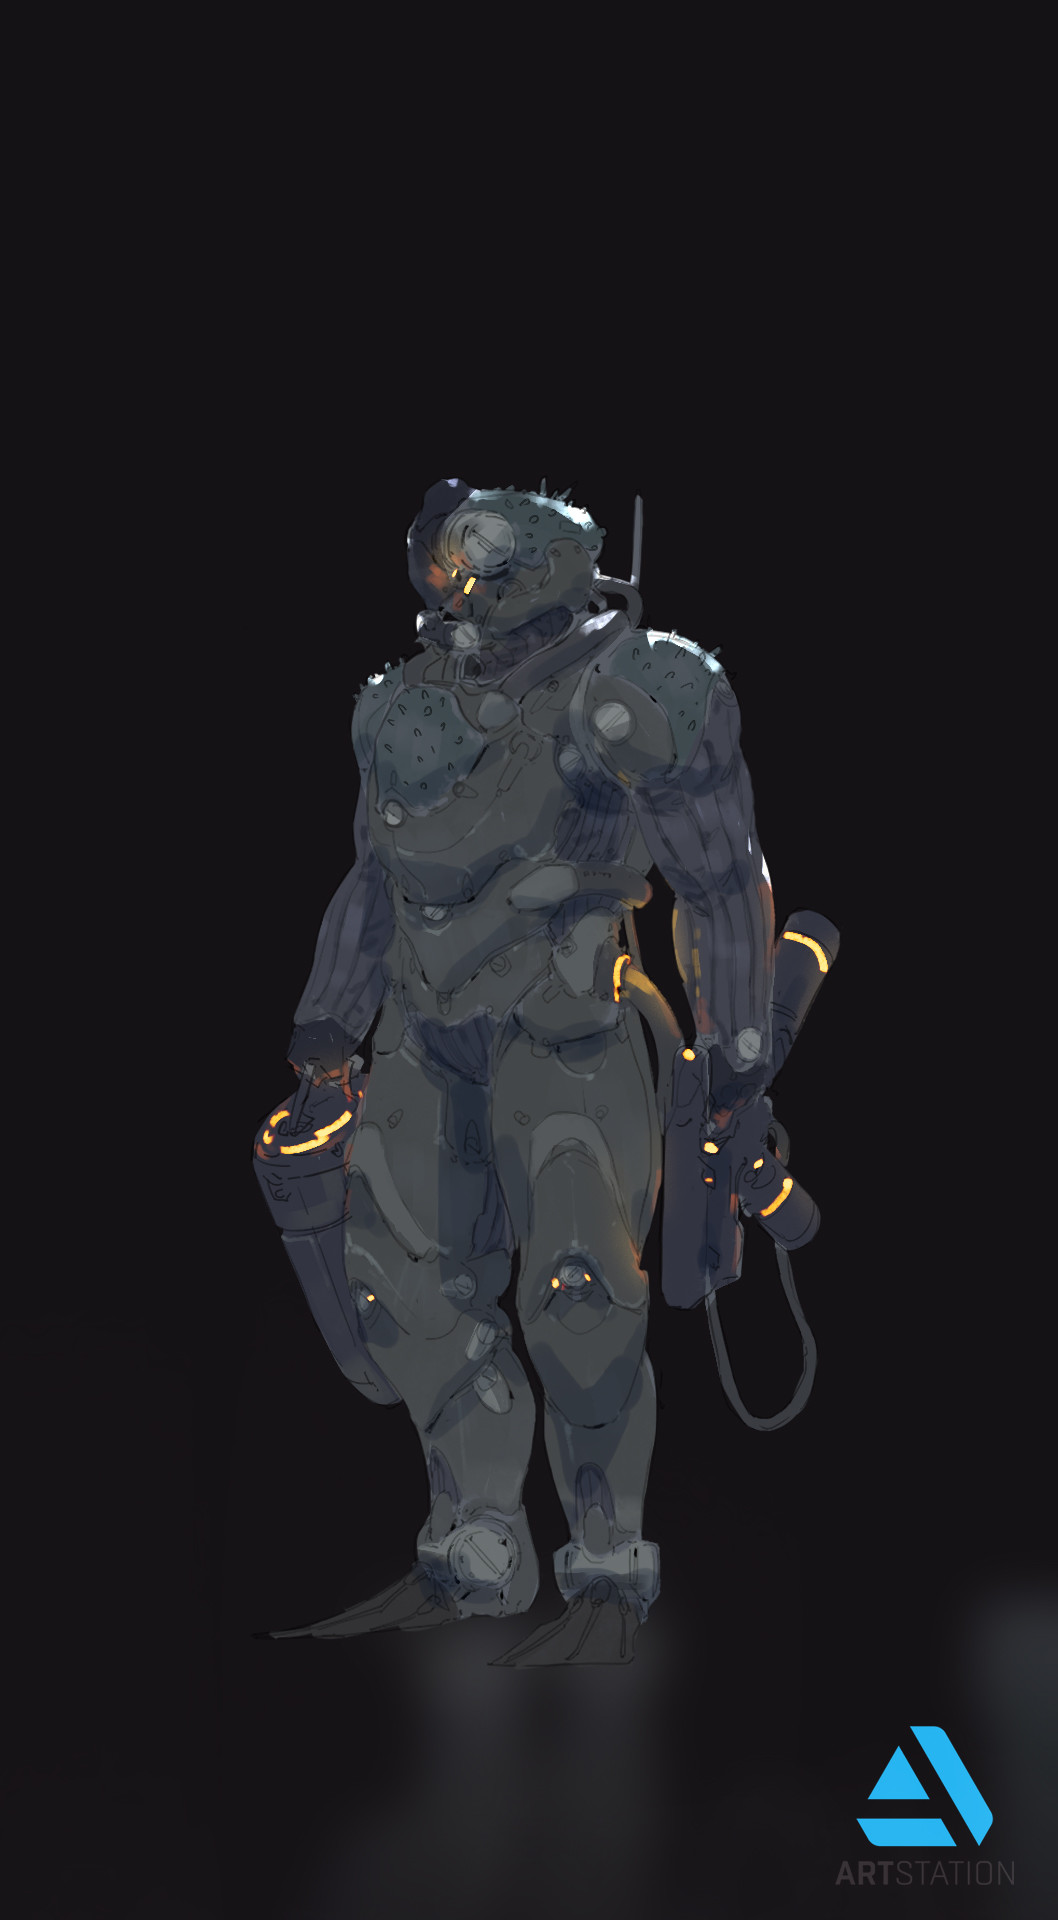 Tyler ryan thedepth humanoid engineer